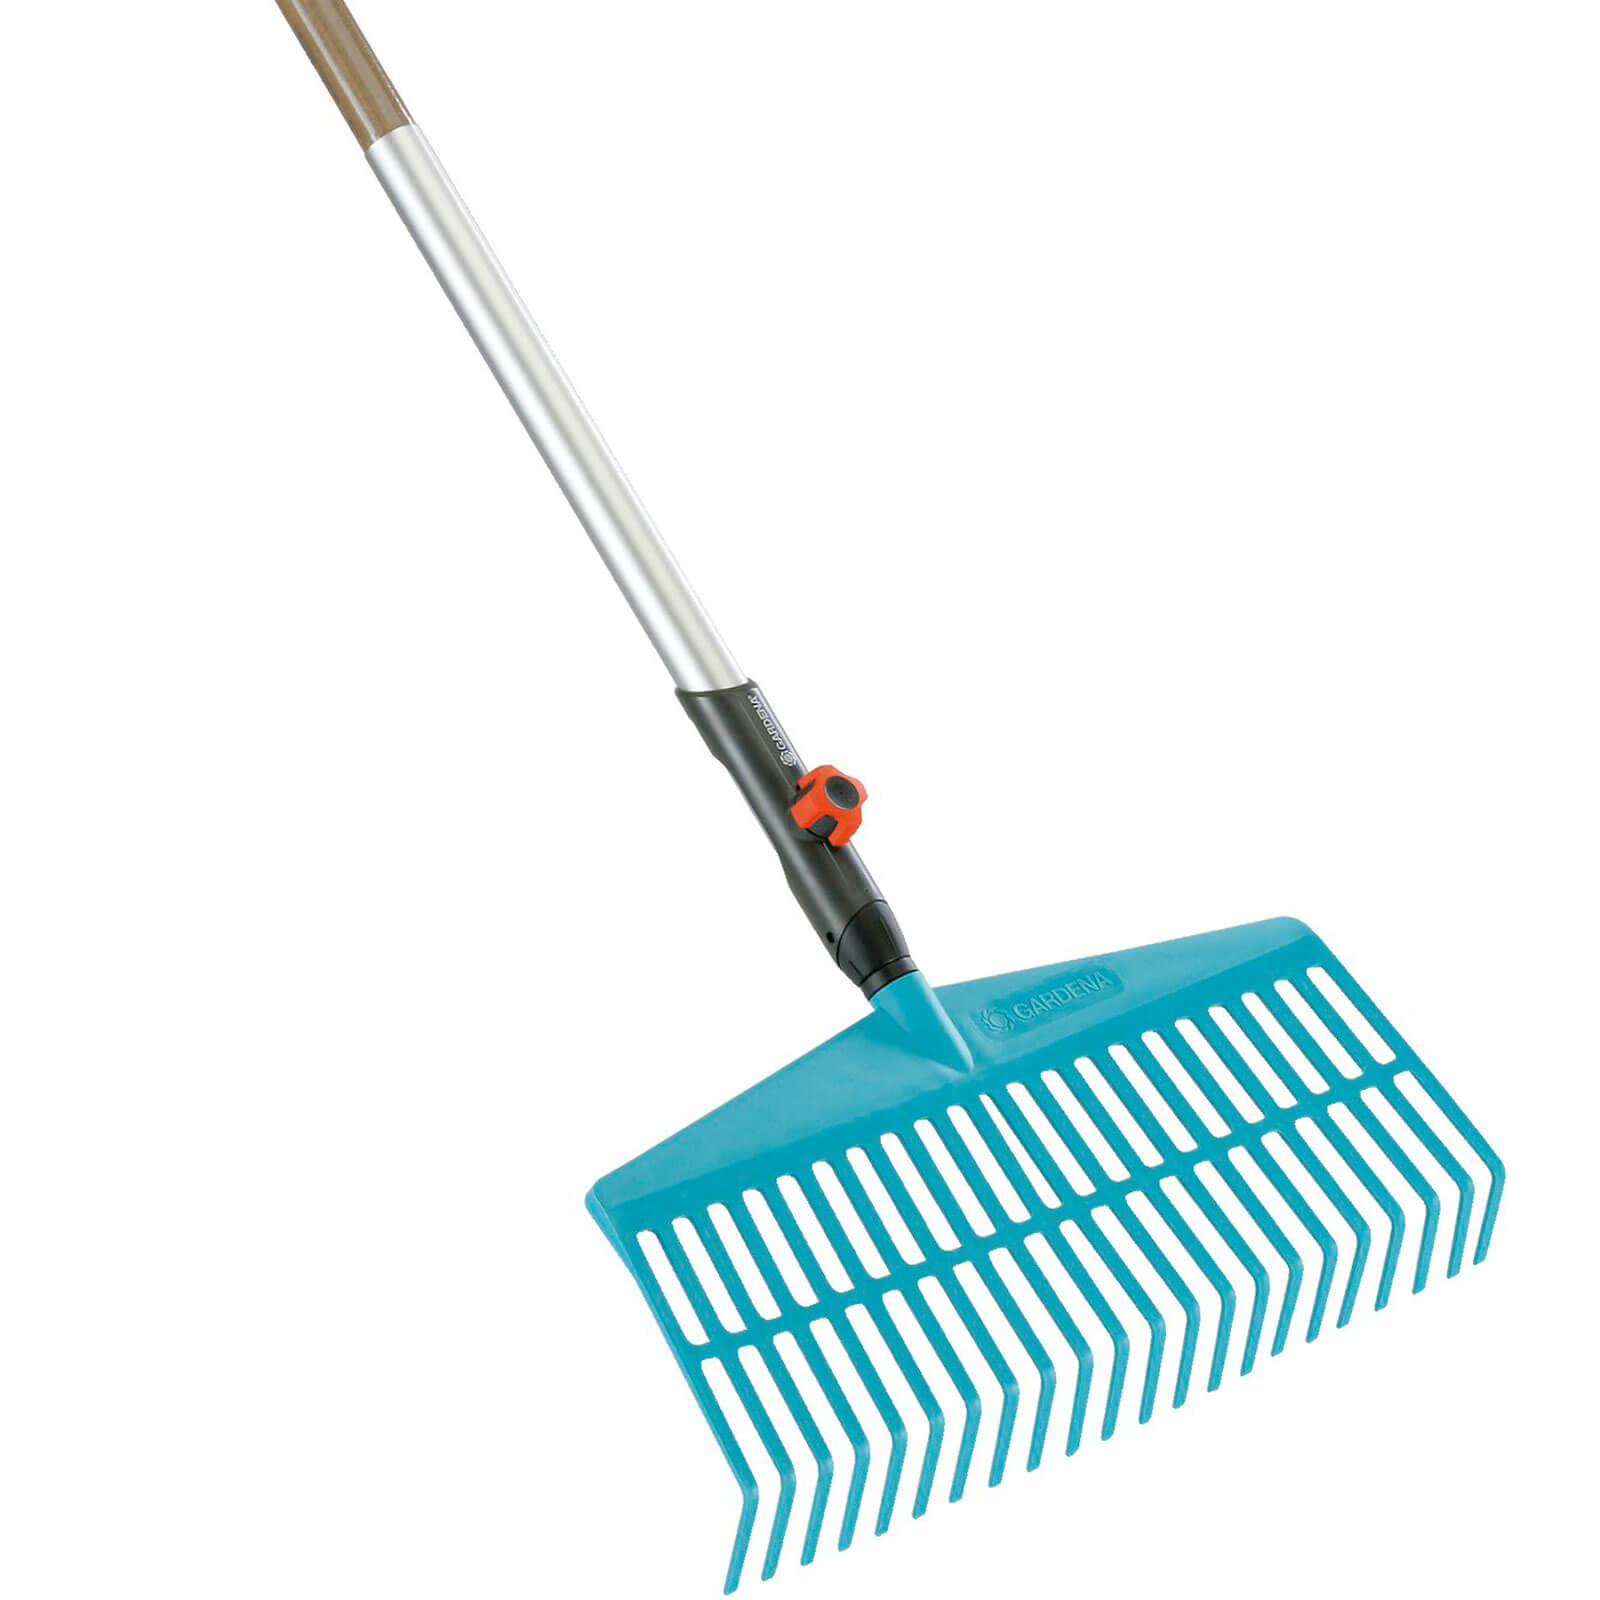 Lawn rake shop for cheap garden tools and save online for Outdoor garden equipment